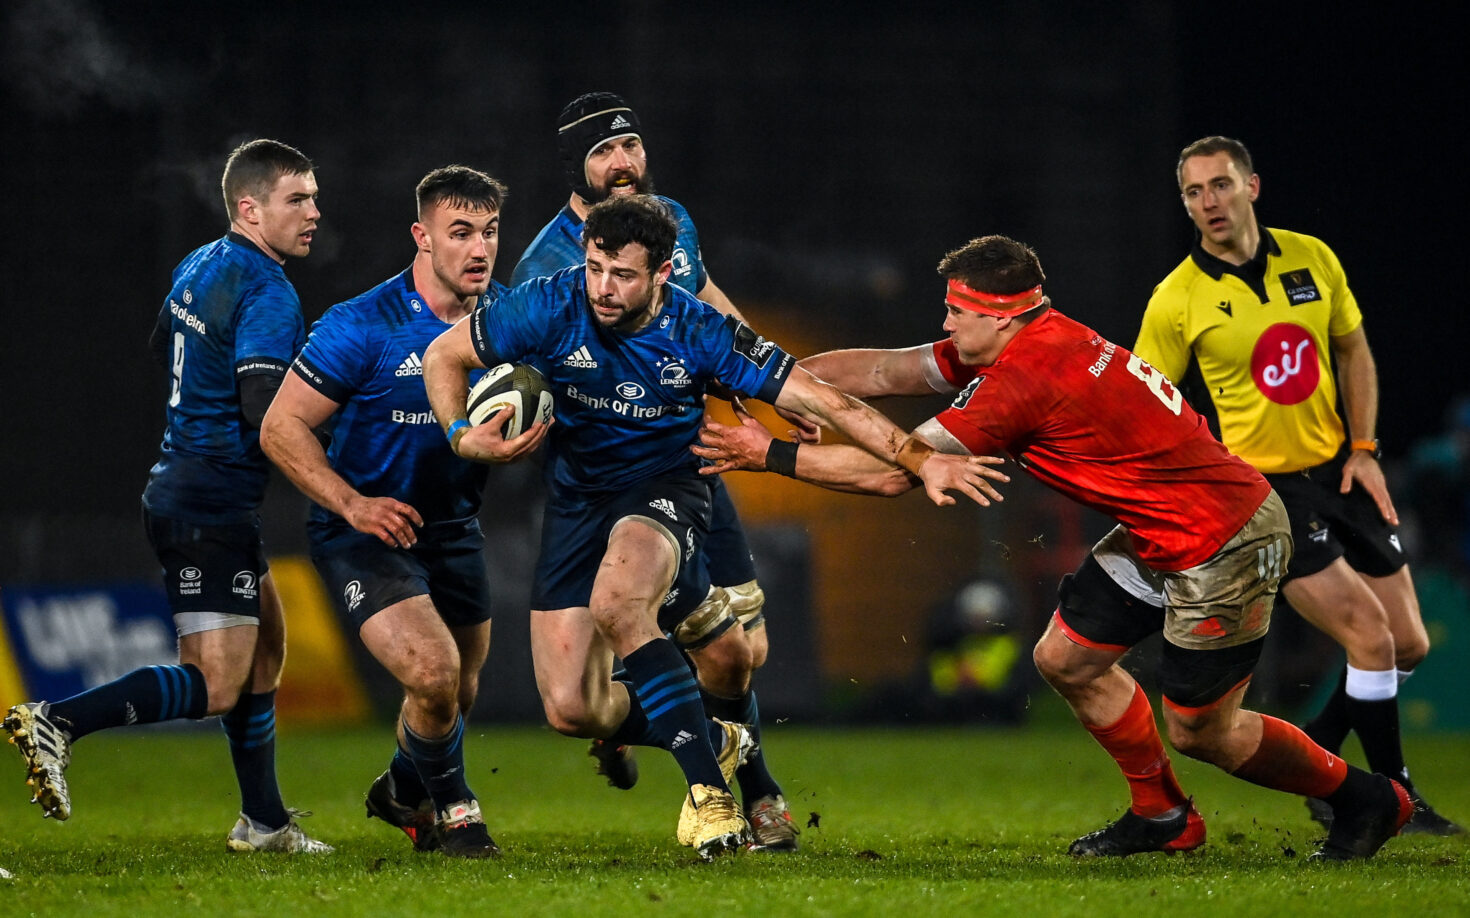 Match report: Munster Rugby 10 Leinster Rugby 13